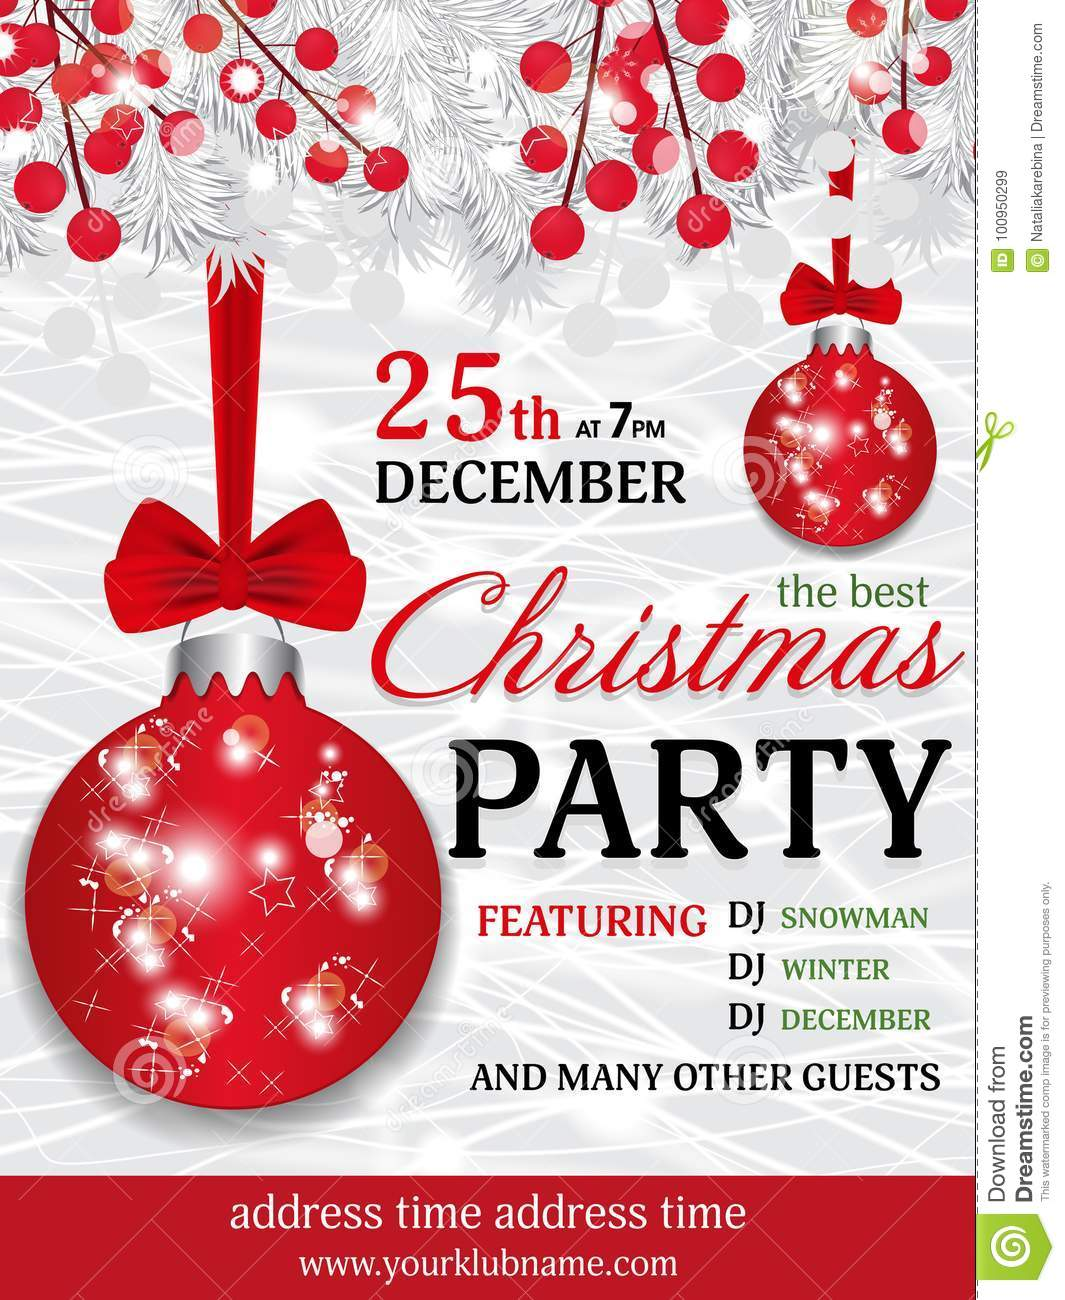 Christmas Party Invitation Template Background With Fir White Br ...